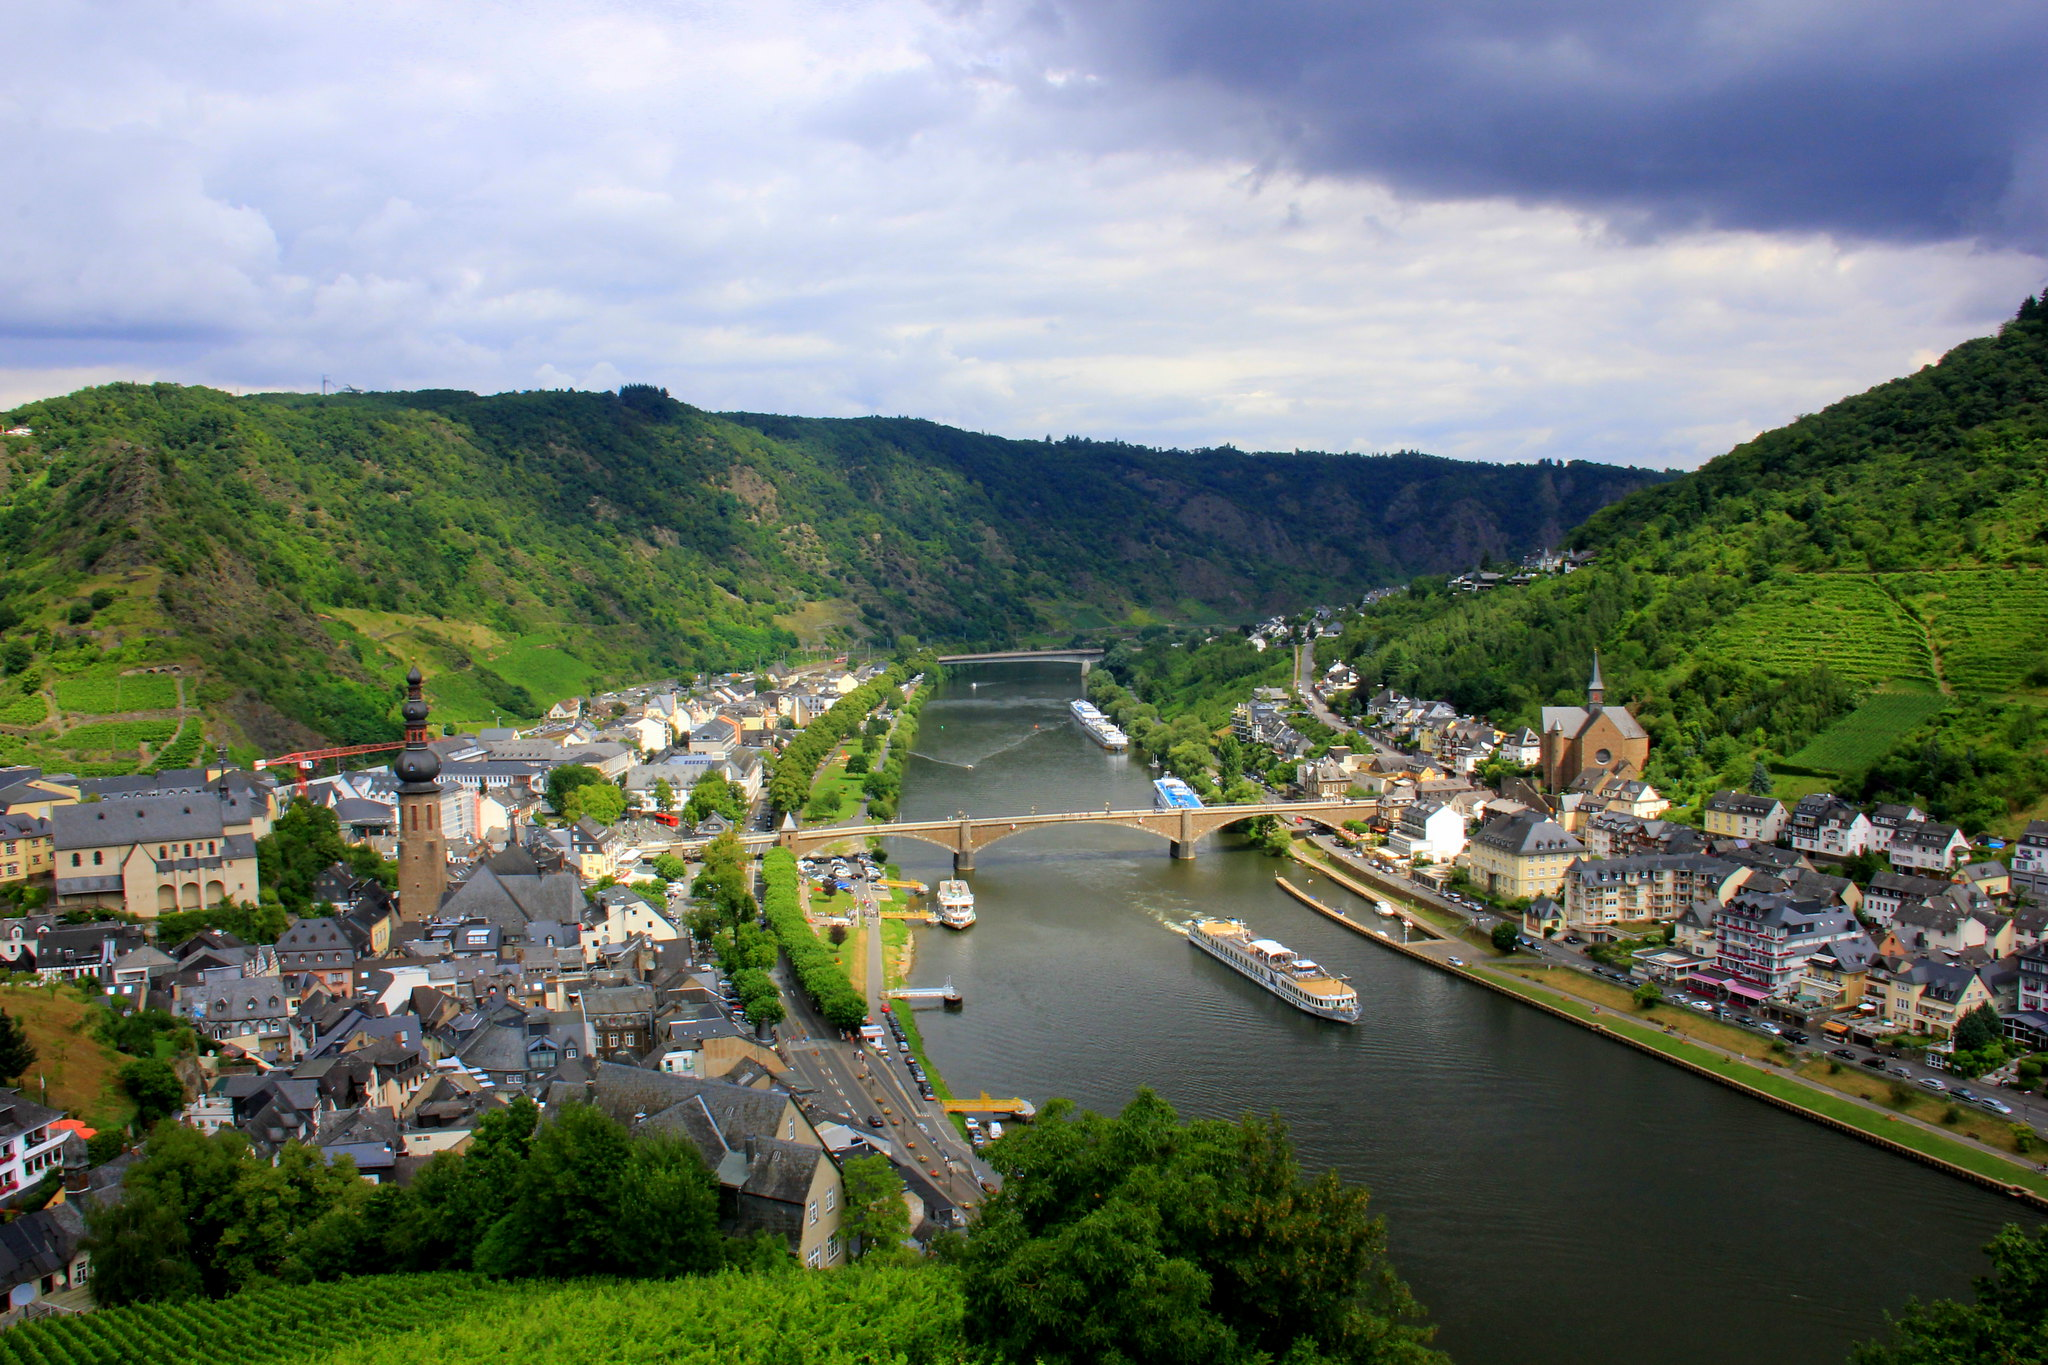 Moselle river flows through Cochem